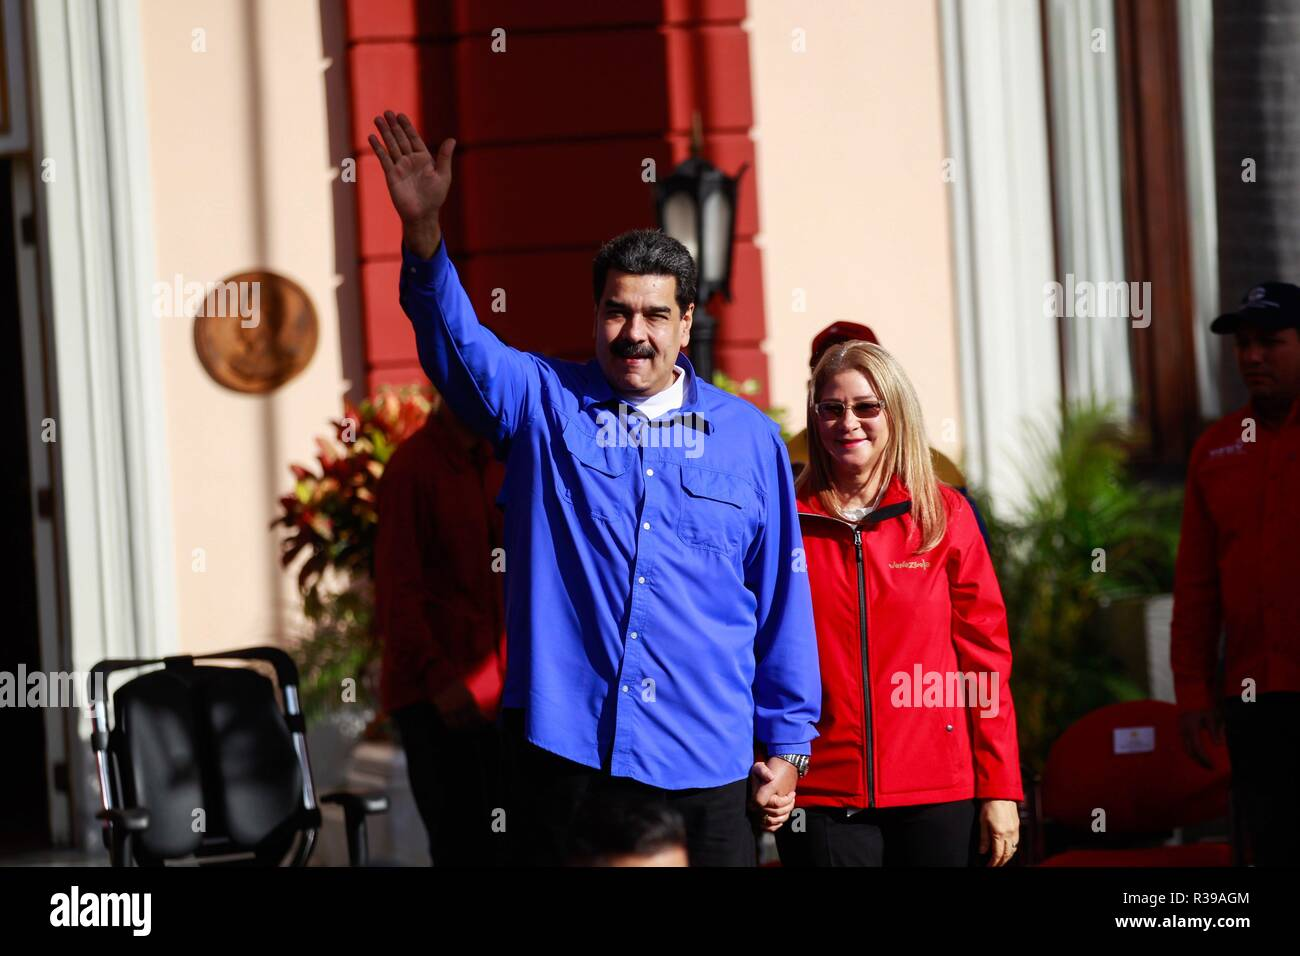 Caracas, Venezuela. 21st Nov, 2018. Venezuelan president, Nicolas Maduro (L), greets his supporters accompanied by his wife, Cilia Flores (R), during an act for the celebration of Student Day, in Caracas, Venezuela, 21 November 2018. Maduro asked university students to join the militias and prepare for the defense of the country 'with weapons in hand' if necessary, in the face of possible attacks by 'imperialism' and 'oligarchy', as he usually refers to the United States and the opposition. Credit: CRISTIAN HERNANDEZ/EFE/Alamy Live News - Stock Image